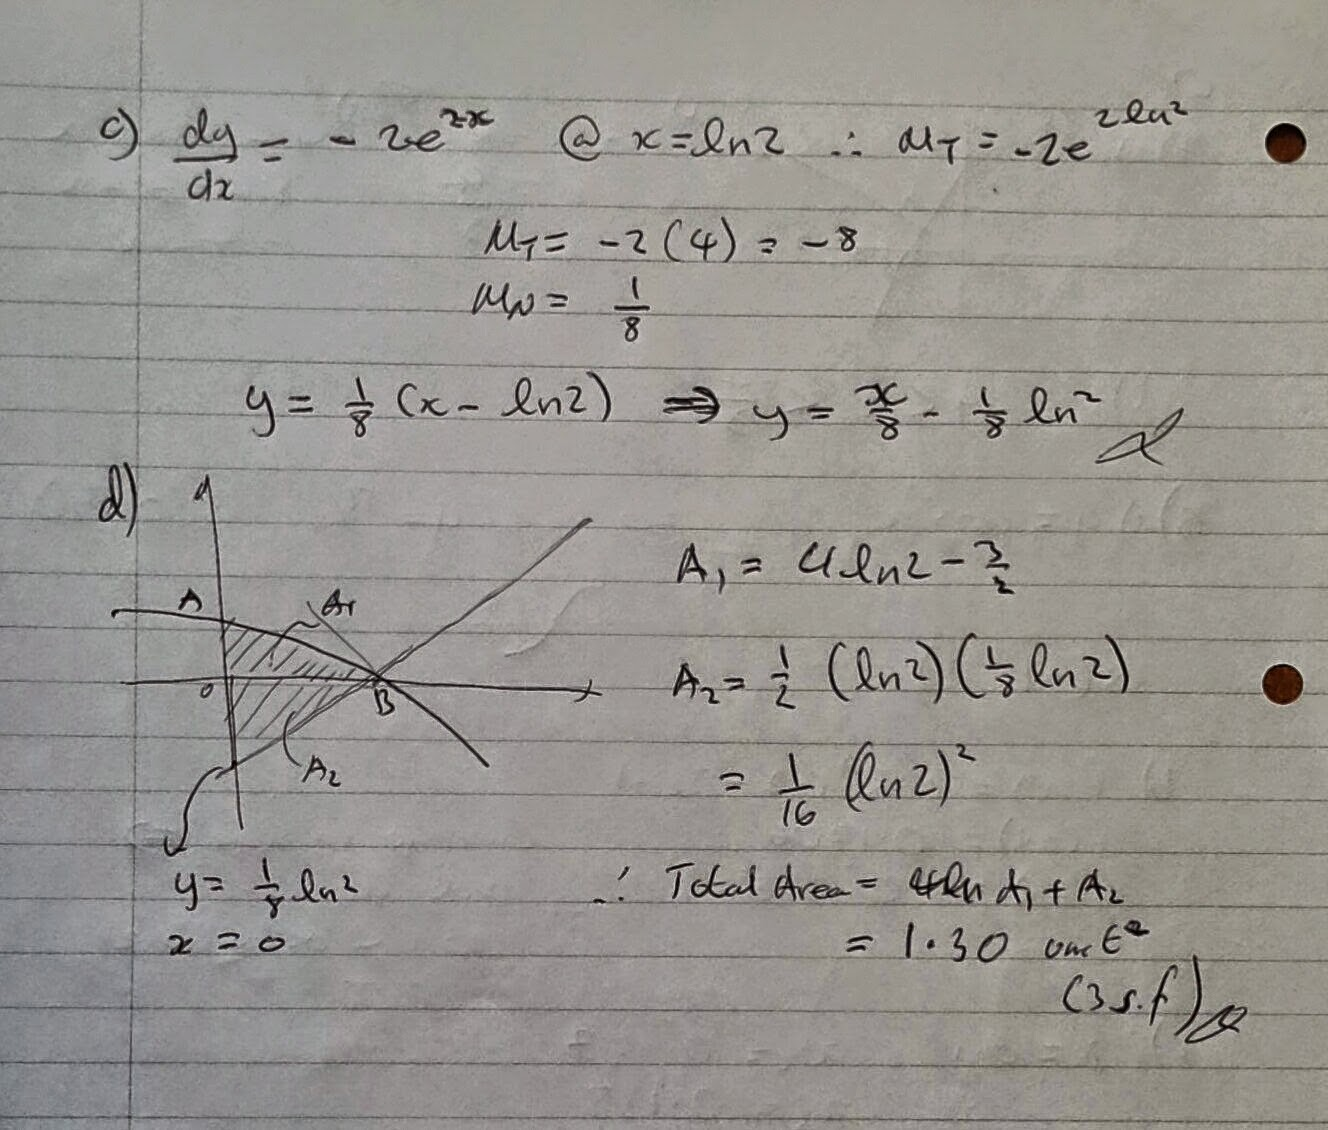 A Level Maths Notes: AQA Core 3 Winter 2007 Exam Paper